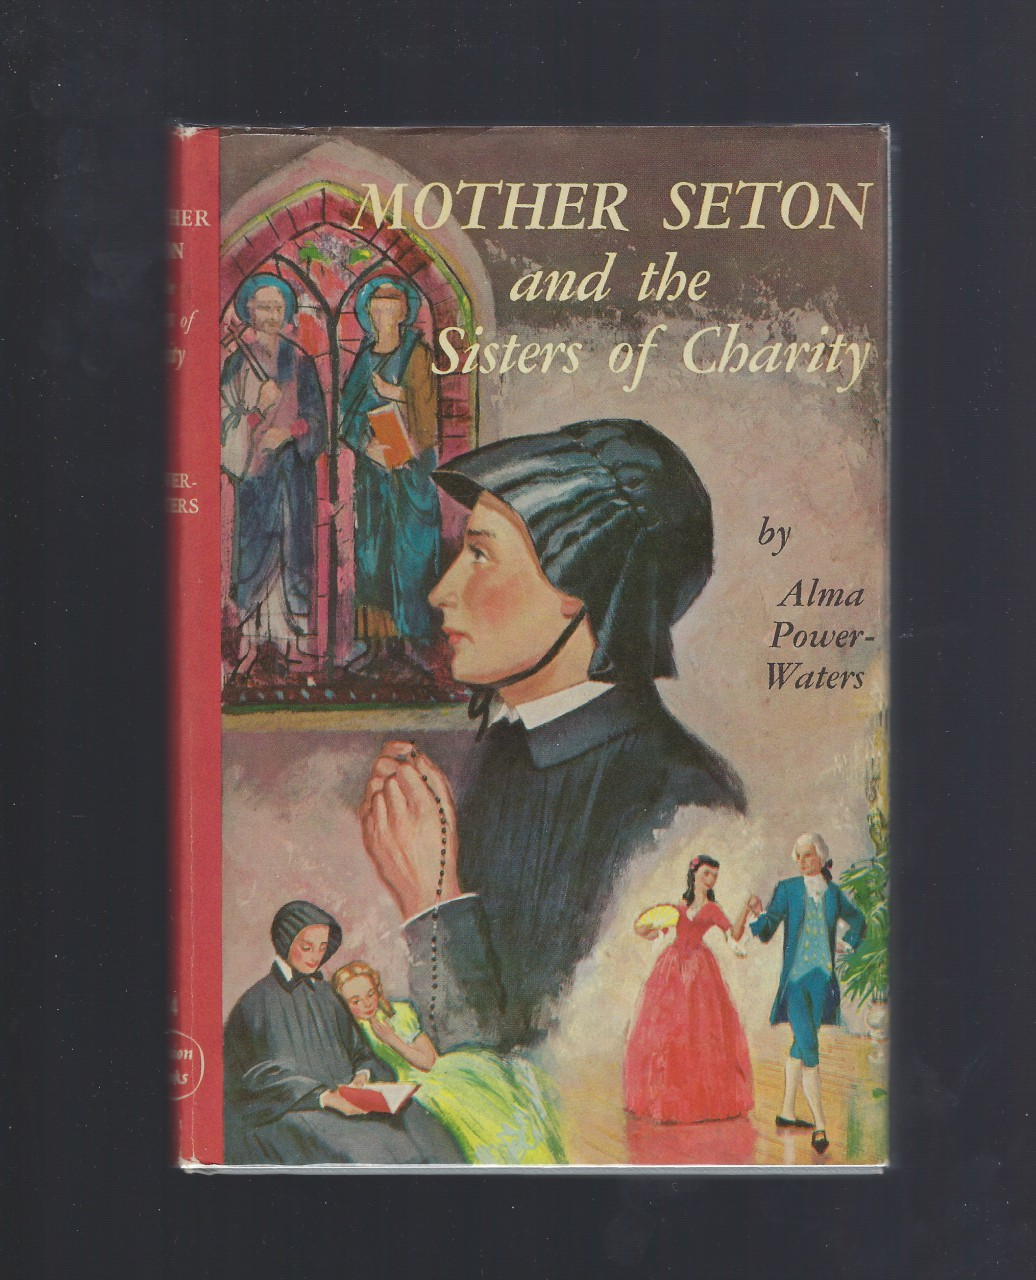 Mother Seton and the Sisters of Charity #24 Vision Catholic HB/DJ, Alma Power-Waters; Illustrator-John Lawn